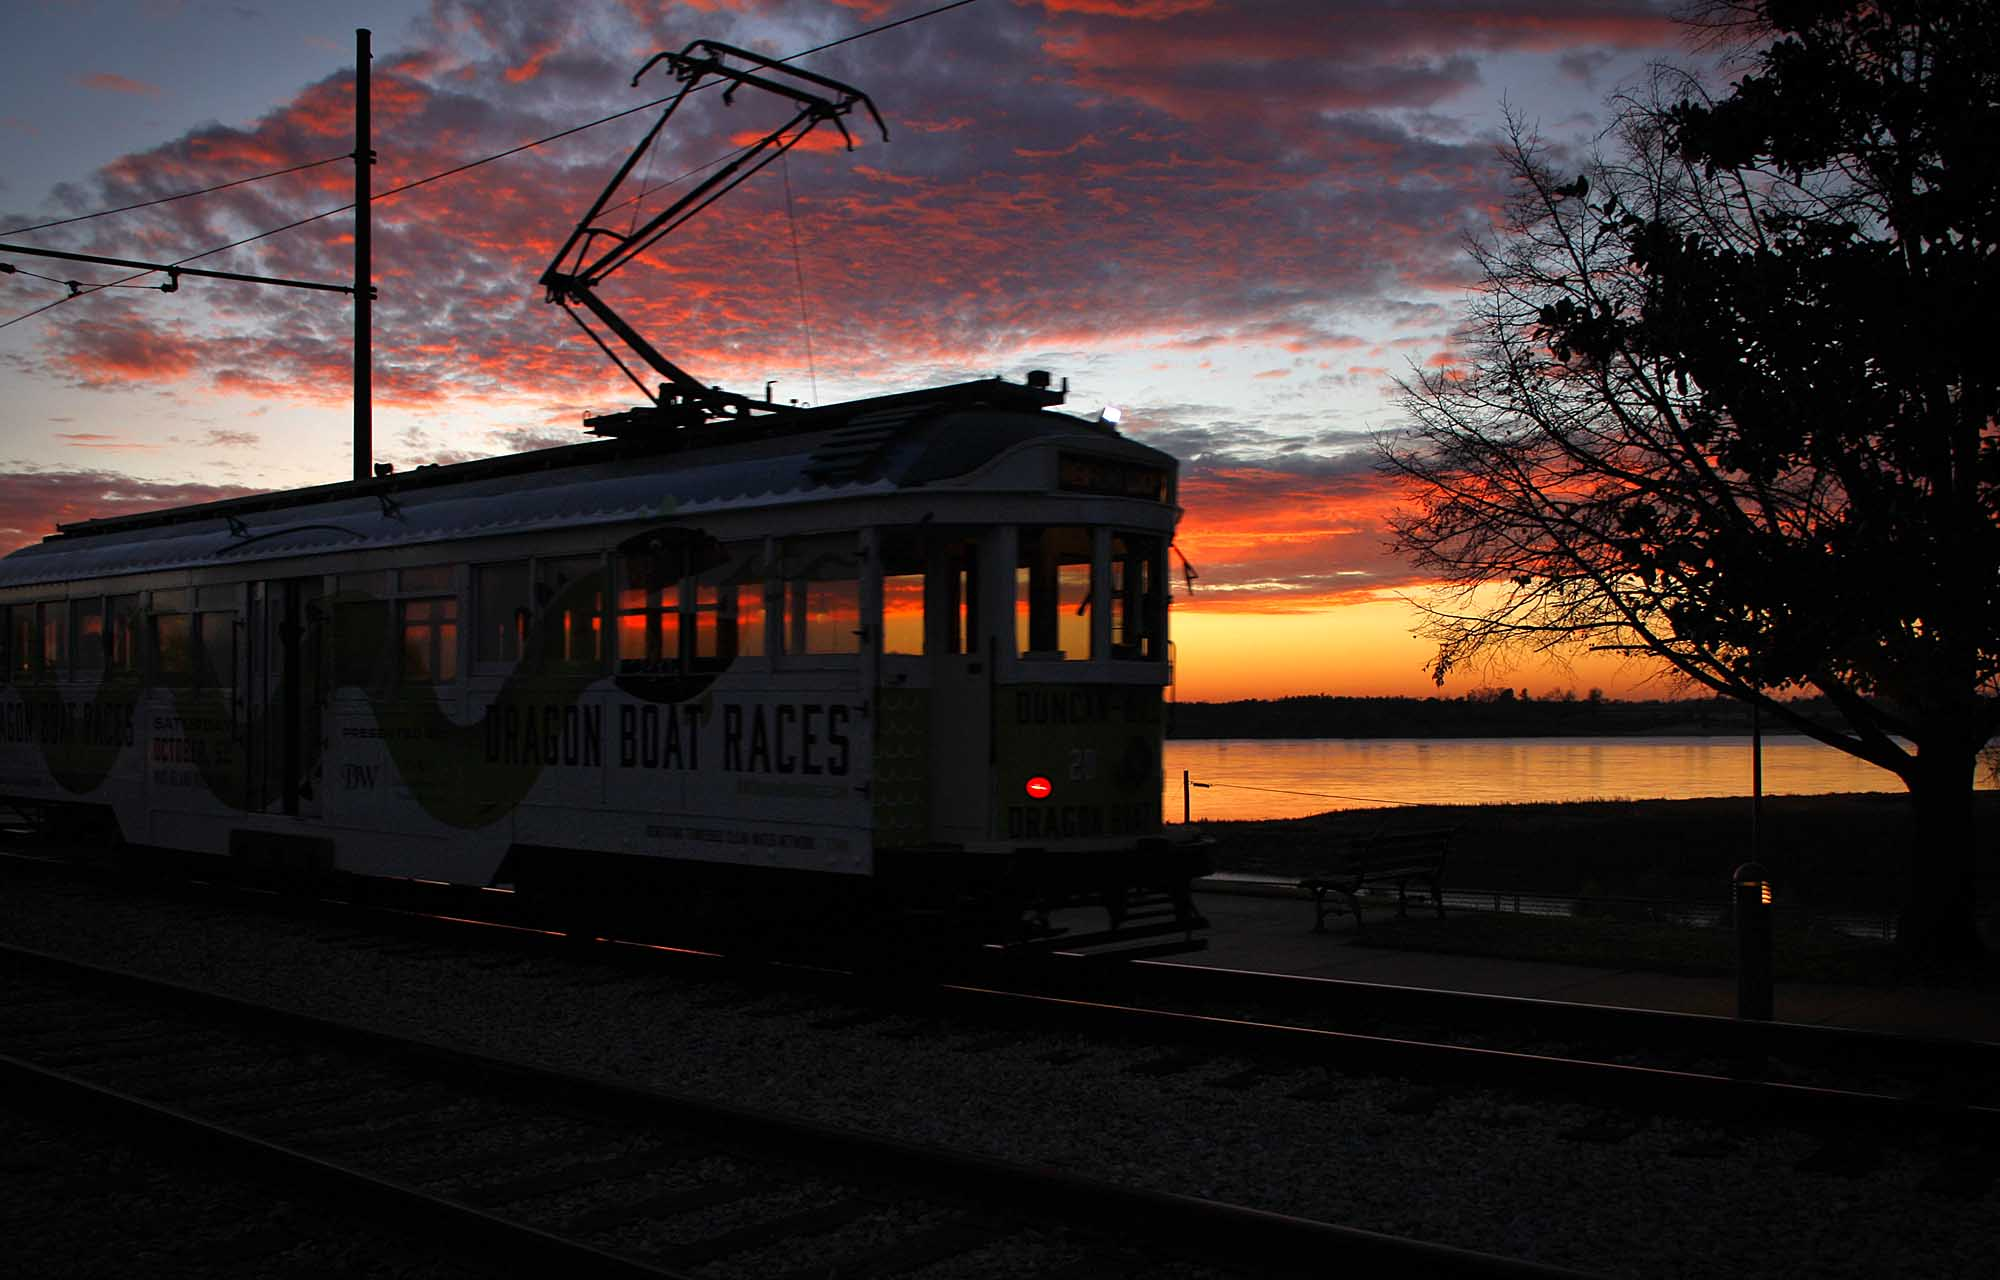 Memphis trolley at sunset